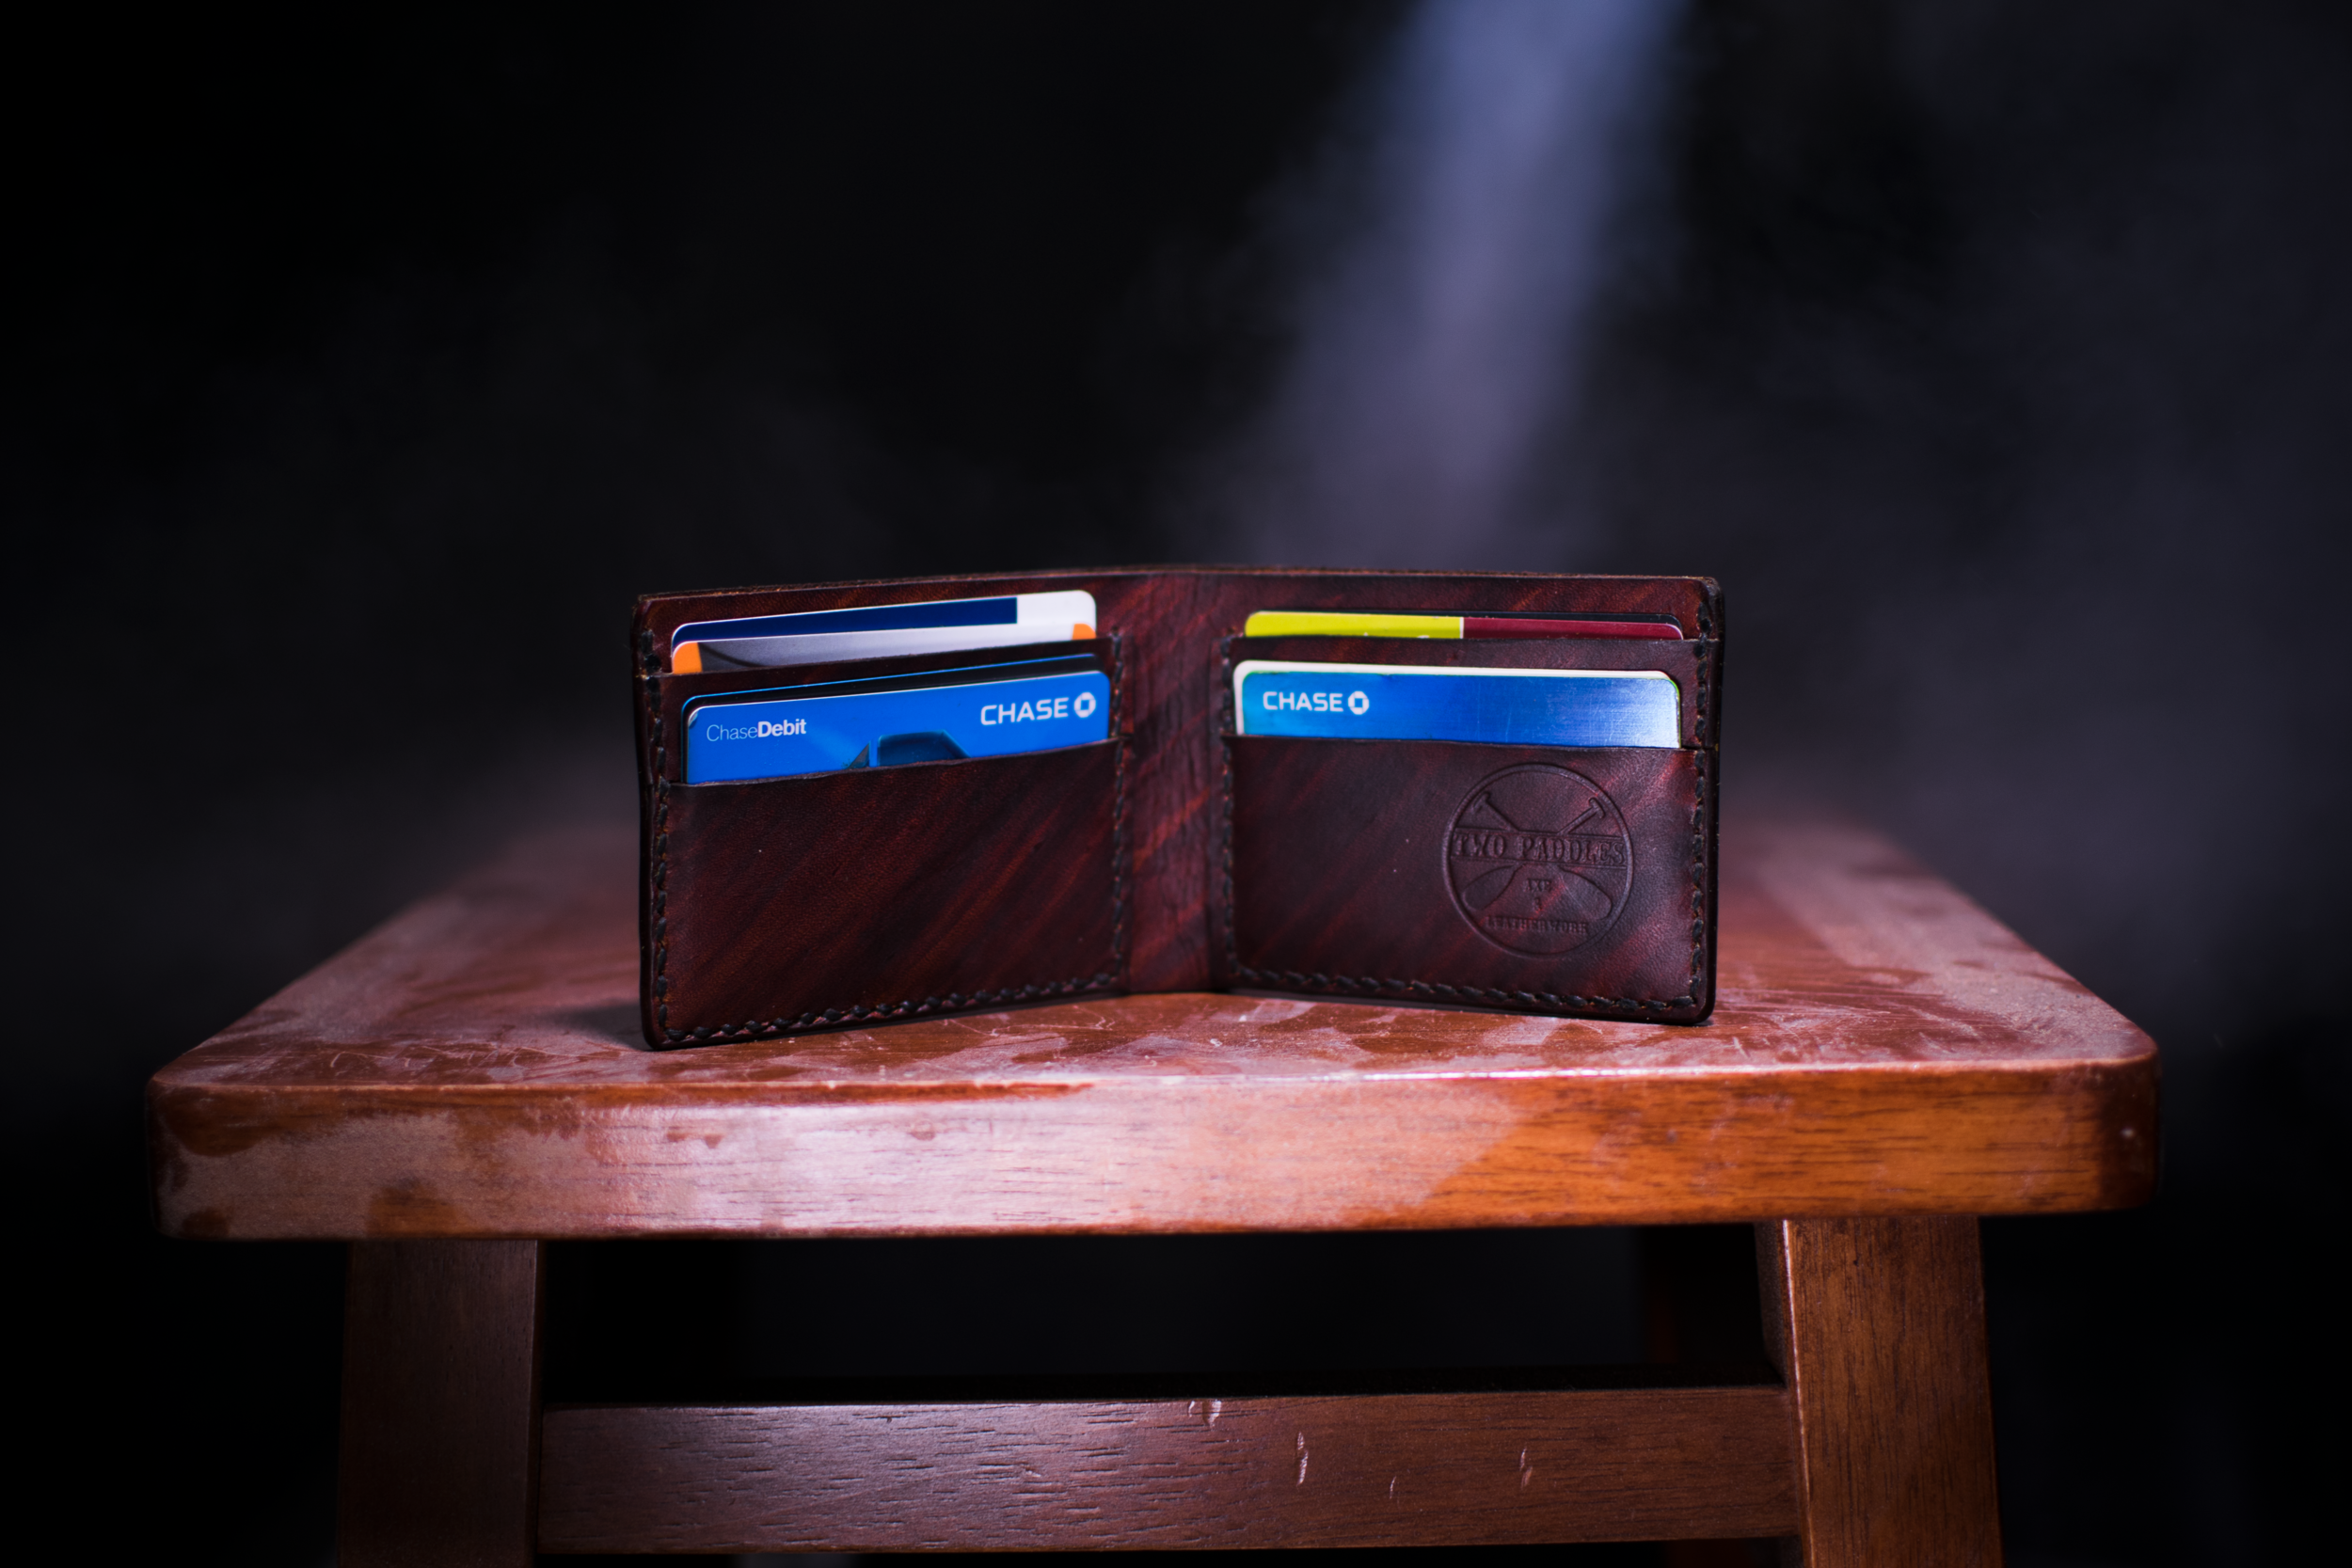 A wallet with credit cards in it.